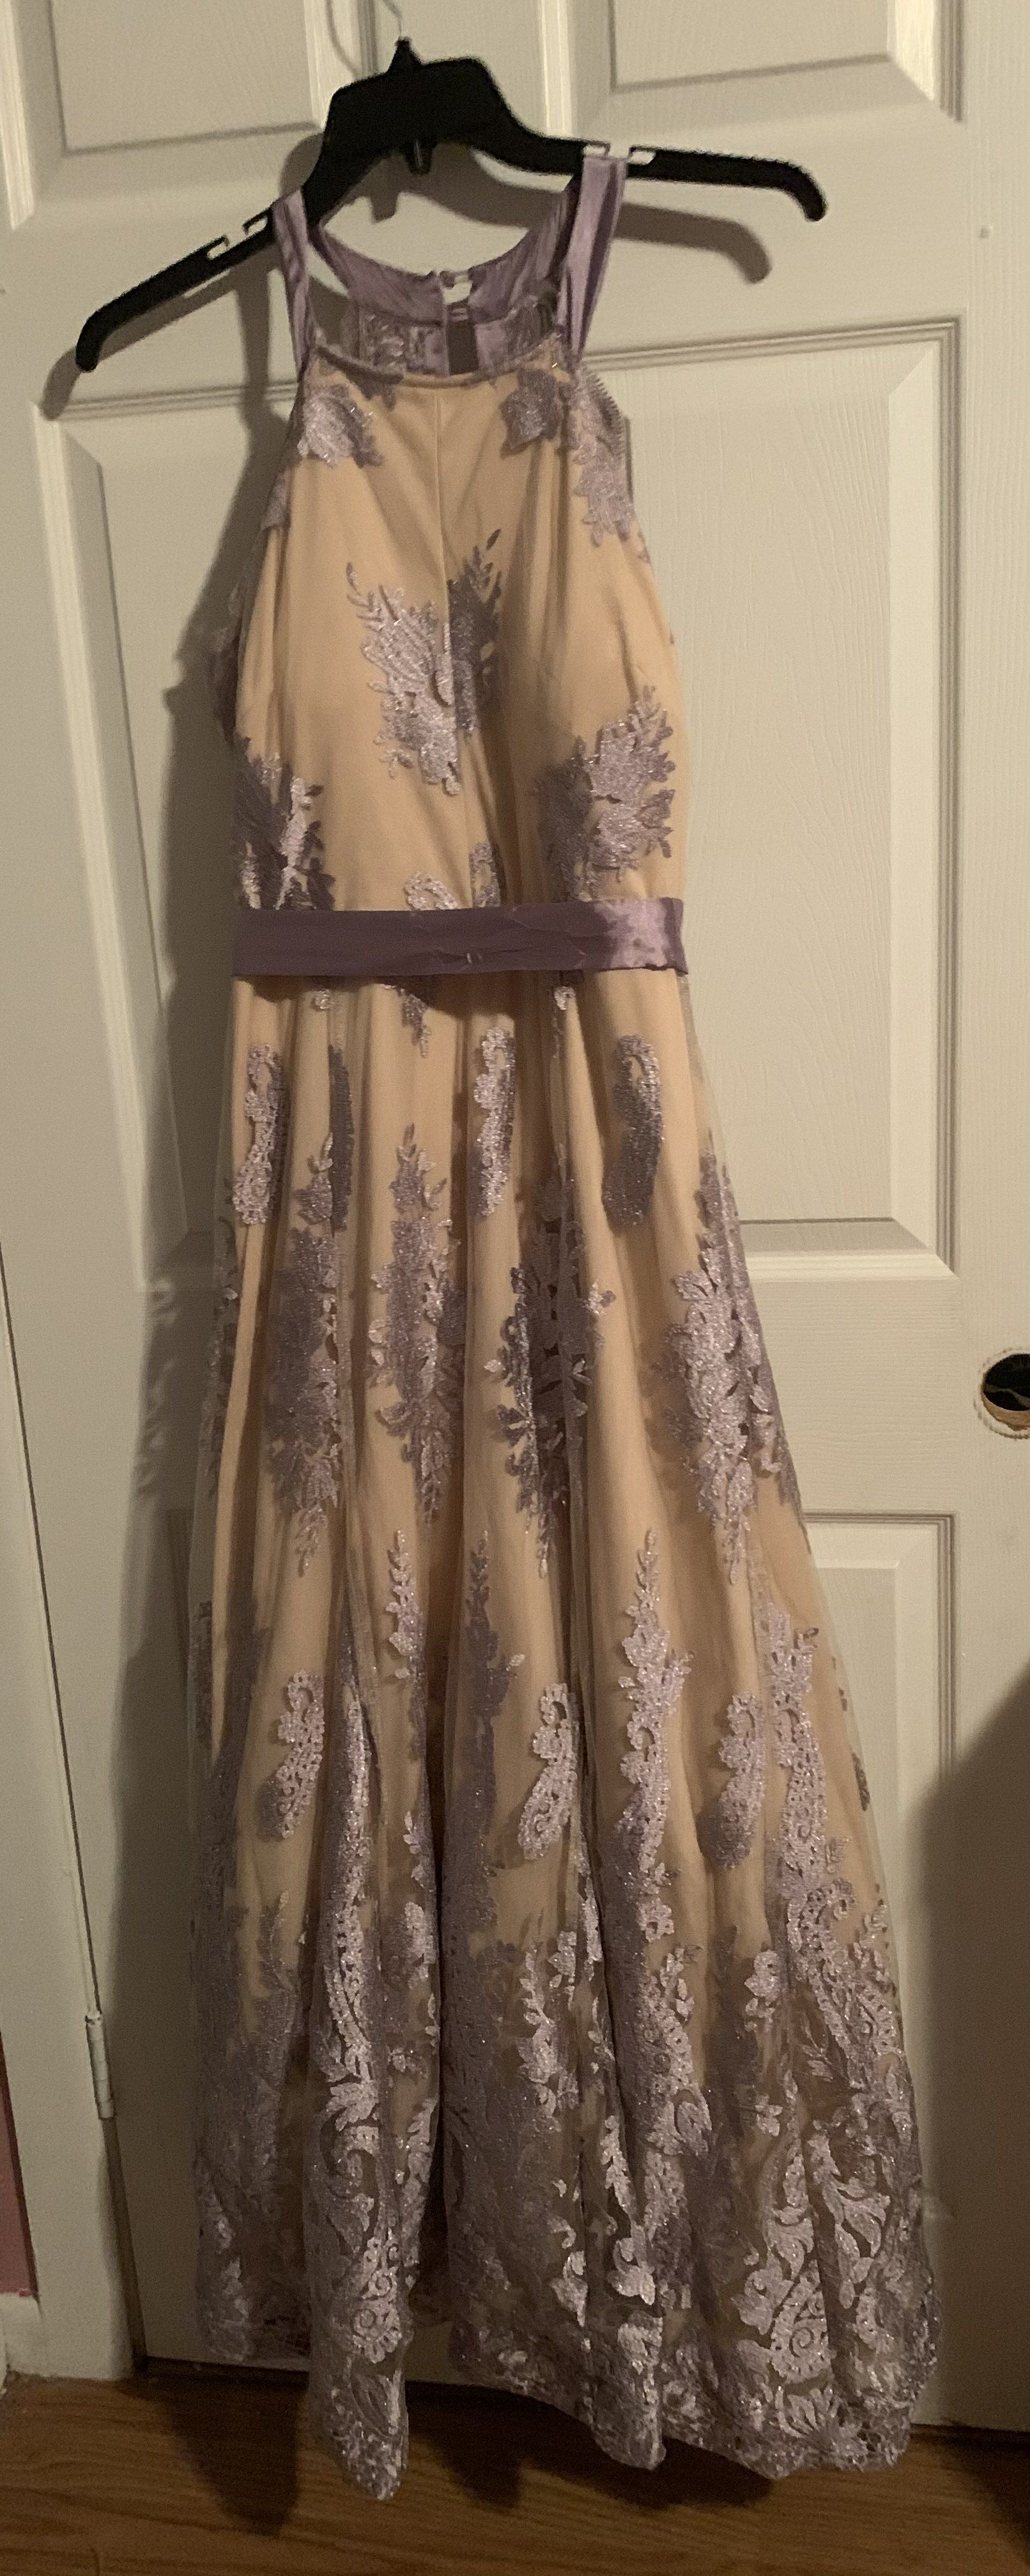 Nude Size 14 A-line Dress on Queenly